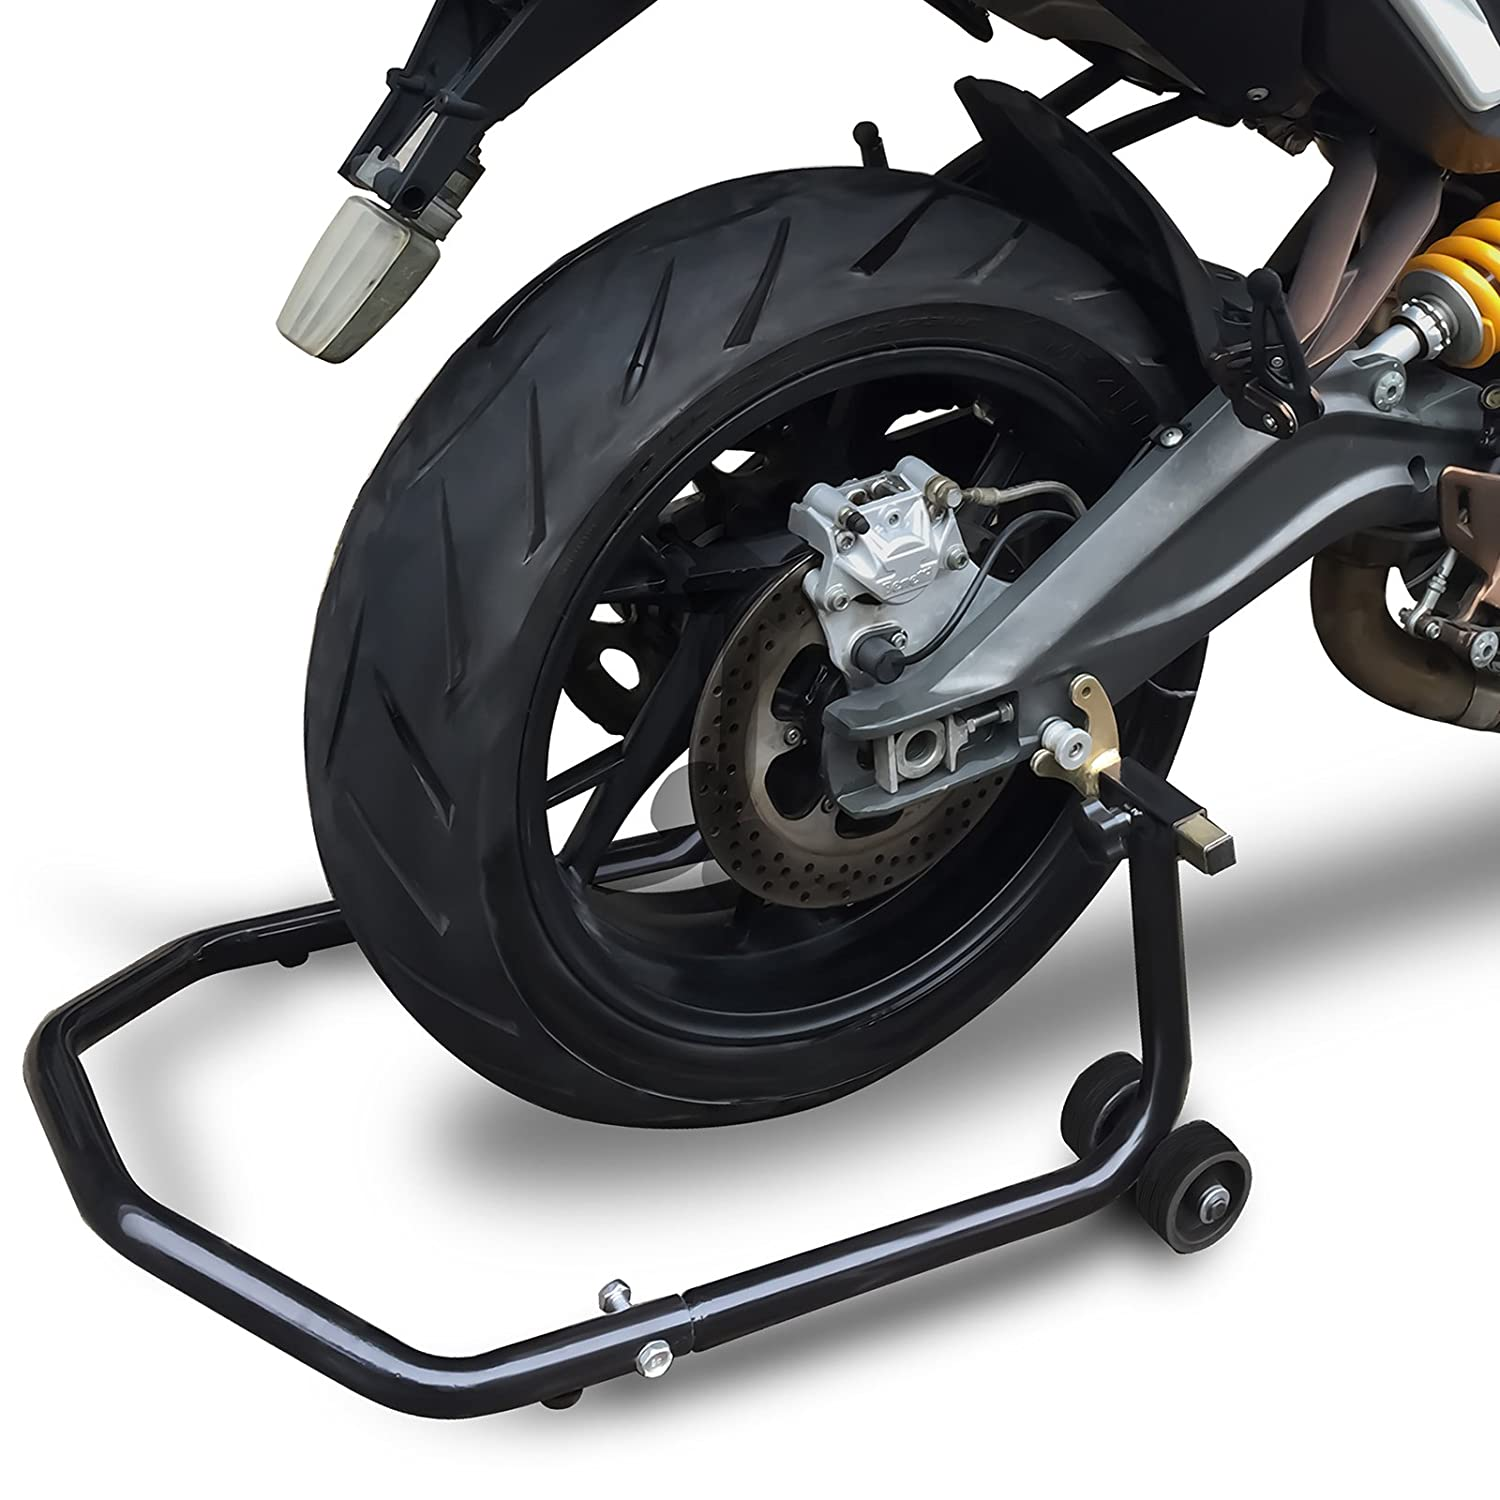 Motorcycle Stand Lift Jack Stands Front or Rear Paddock Wheel Lifts Motor-Cycles Sports-Bike Motor-Bike Street-Bike Spool Center Tire Chock Maintenance Accessories 2-in-1 Universal Fork /& Swing-Arm